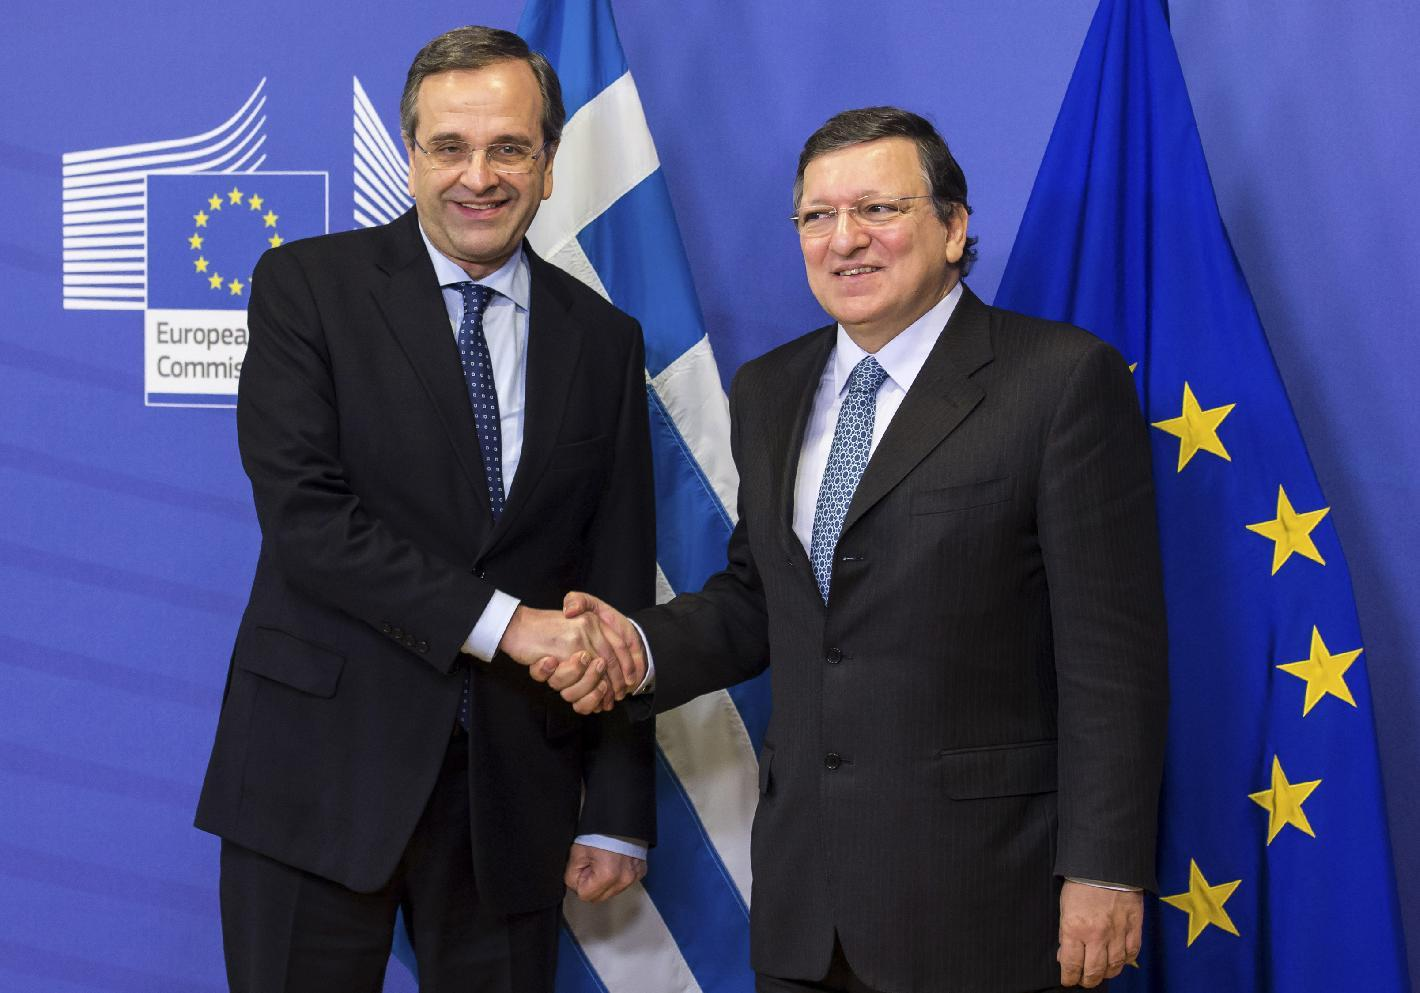 FILE - This is a Wednesday Dec. 4, 2013 file photo of European Commission President Jose Manuel Barroso, right, and Greek Prime Minister Antonis Samaras as they shake hands as they pose for photos upon arrival at the European Commission headquarters in Brussels. The European Union says Greece has reached a major financial milestone that was required if it were to be granted more debt relief. European Commission spokesman Simon O'Connor said Wednesday April 23, 2014 that Greece's government revenues last year exceeded expenditure when interest payment and other items were excluded. (AP Photo/Geert Vanden Wijngaert, File)